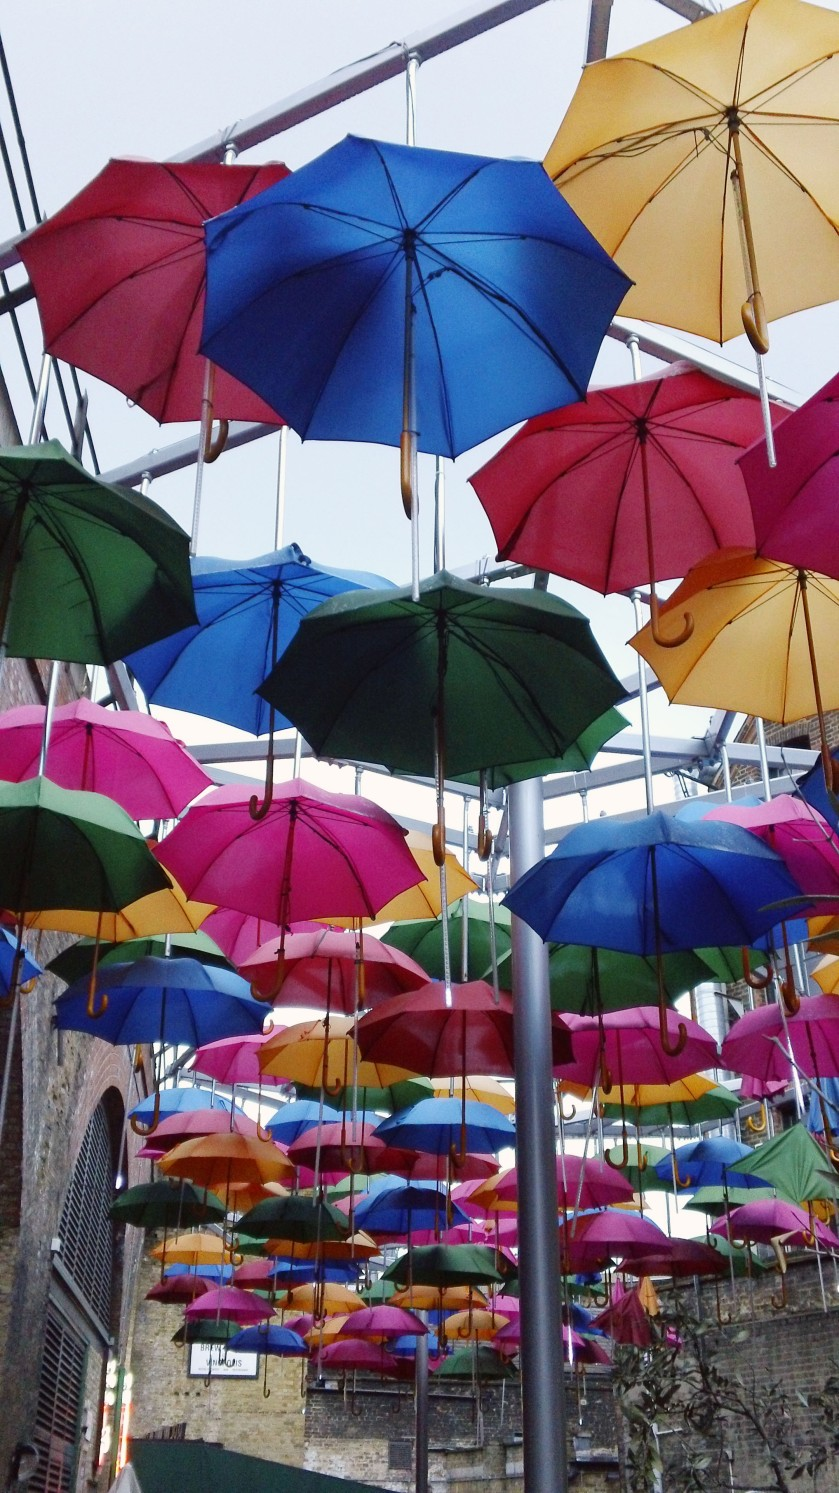 Umbrellas in Borough Market